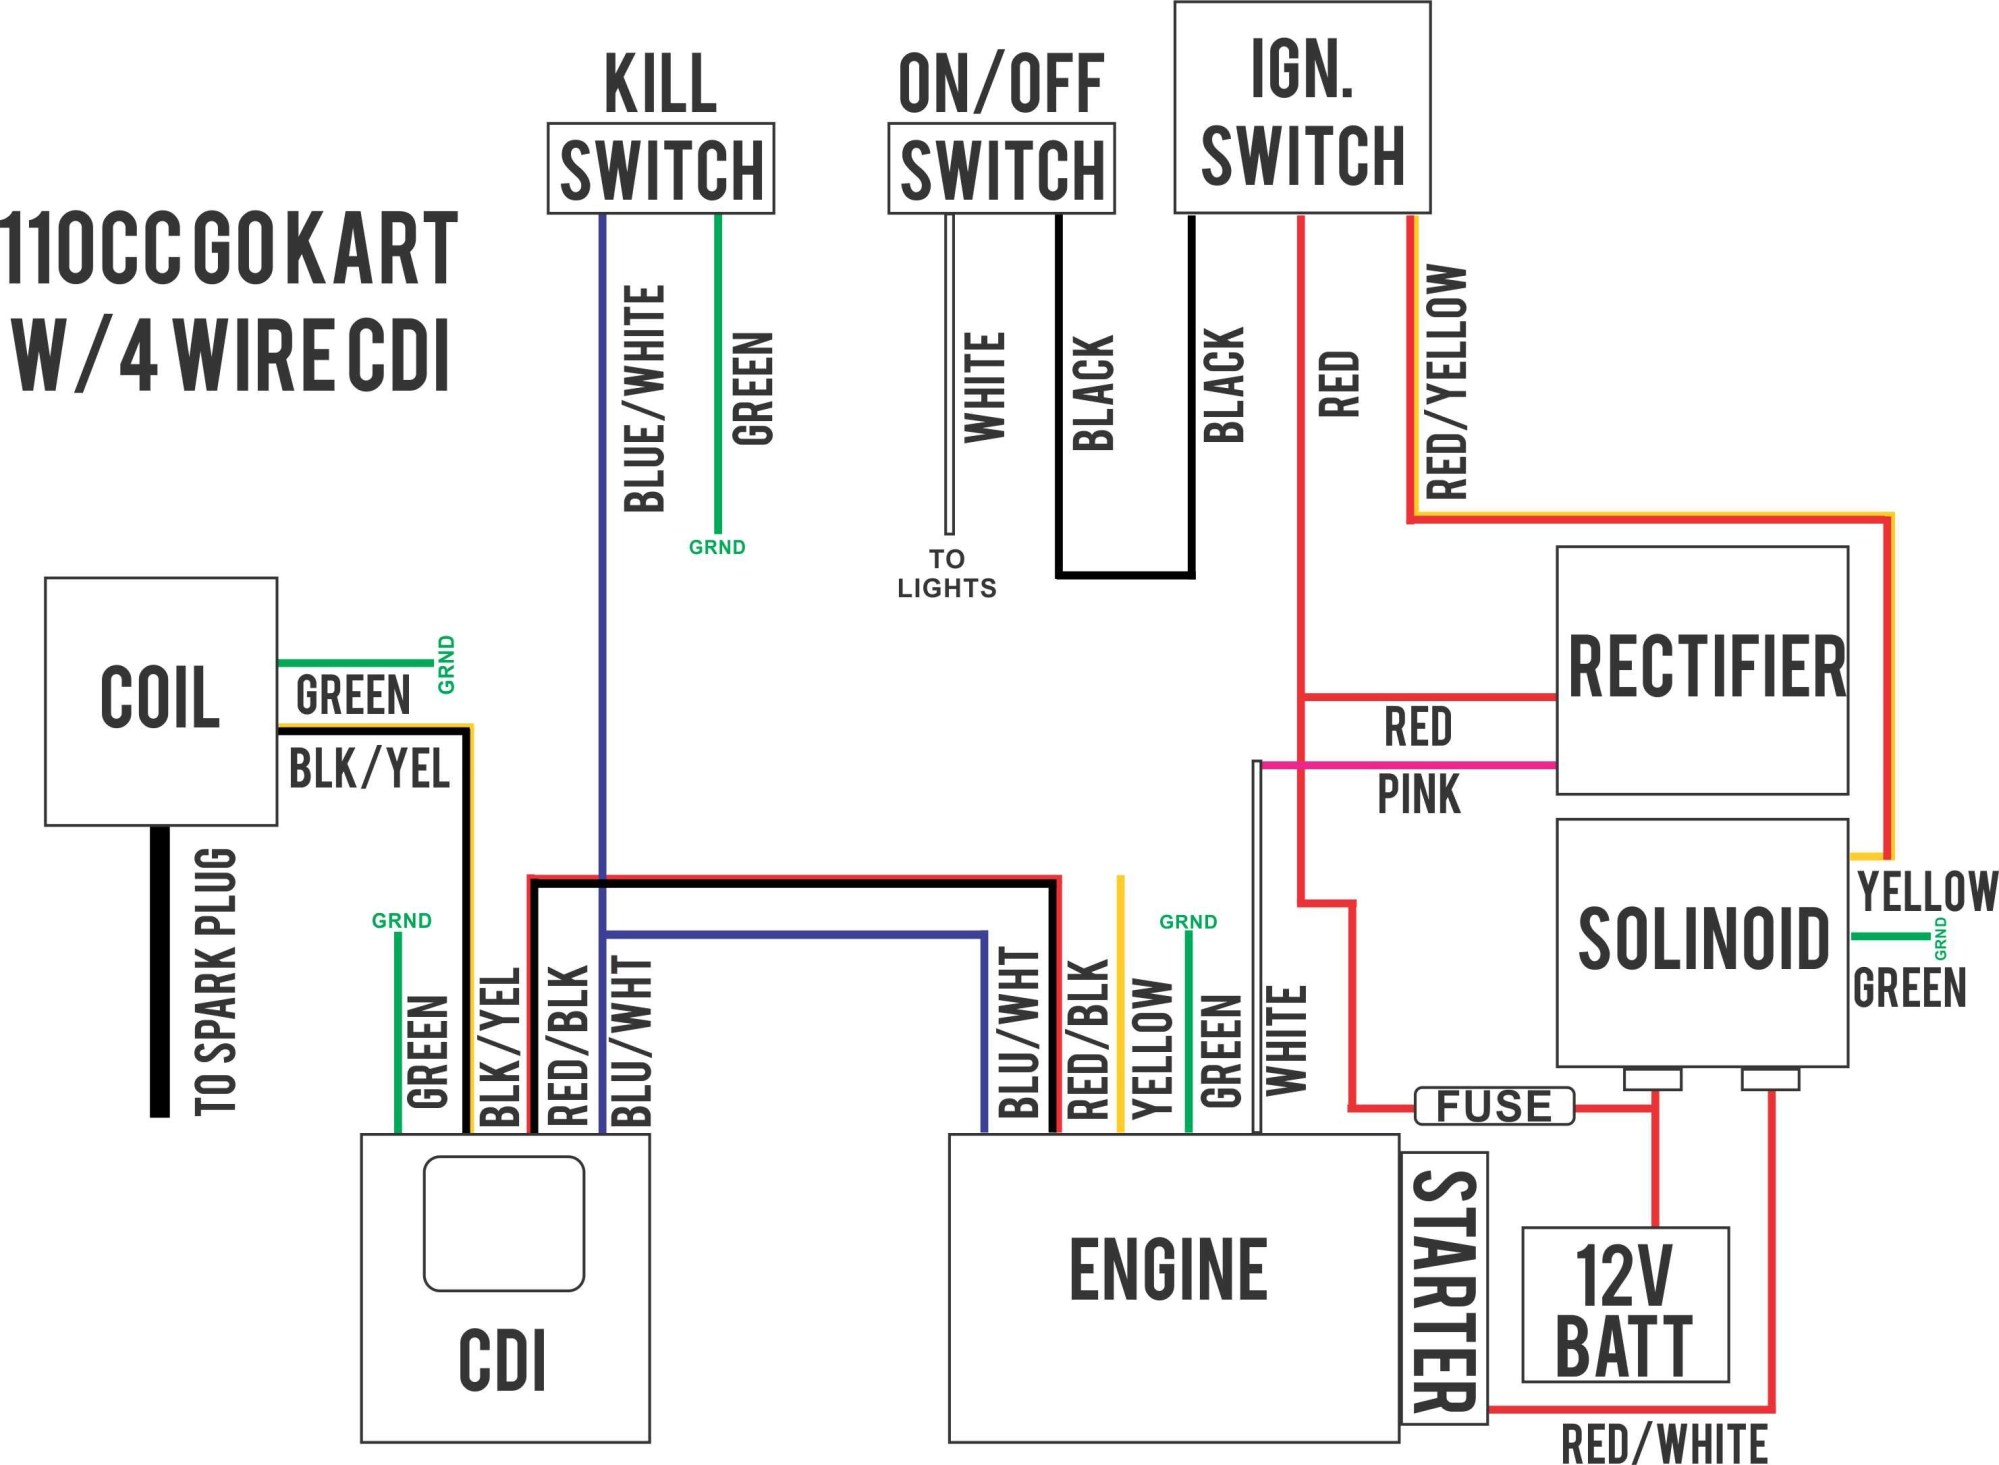 hight resolution of lt suzuki atv wiring diagram wiring diagrams konsult suzuki s amp p 400 wiring